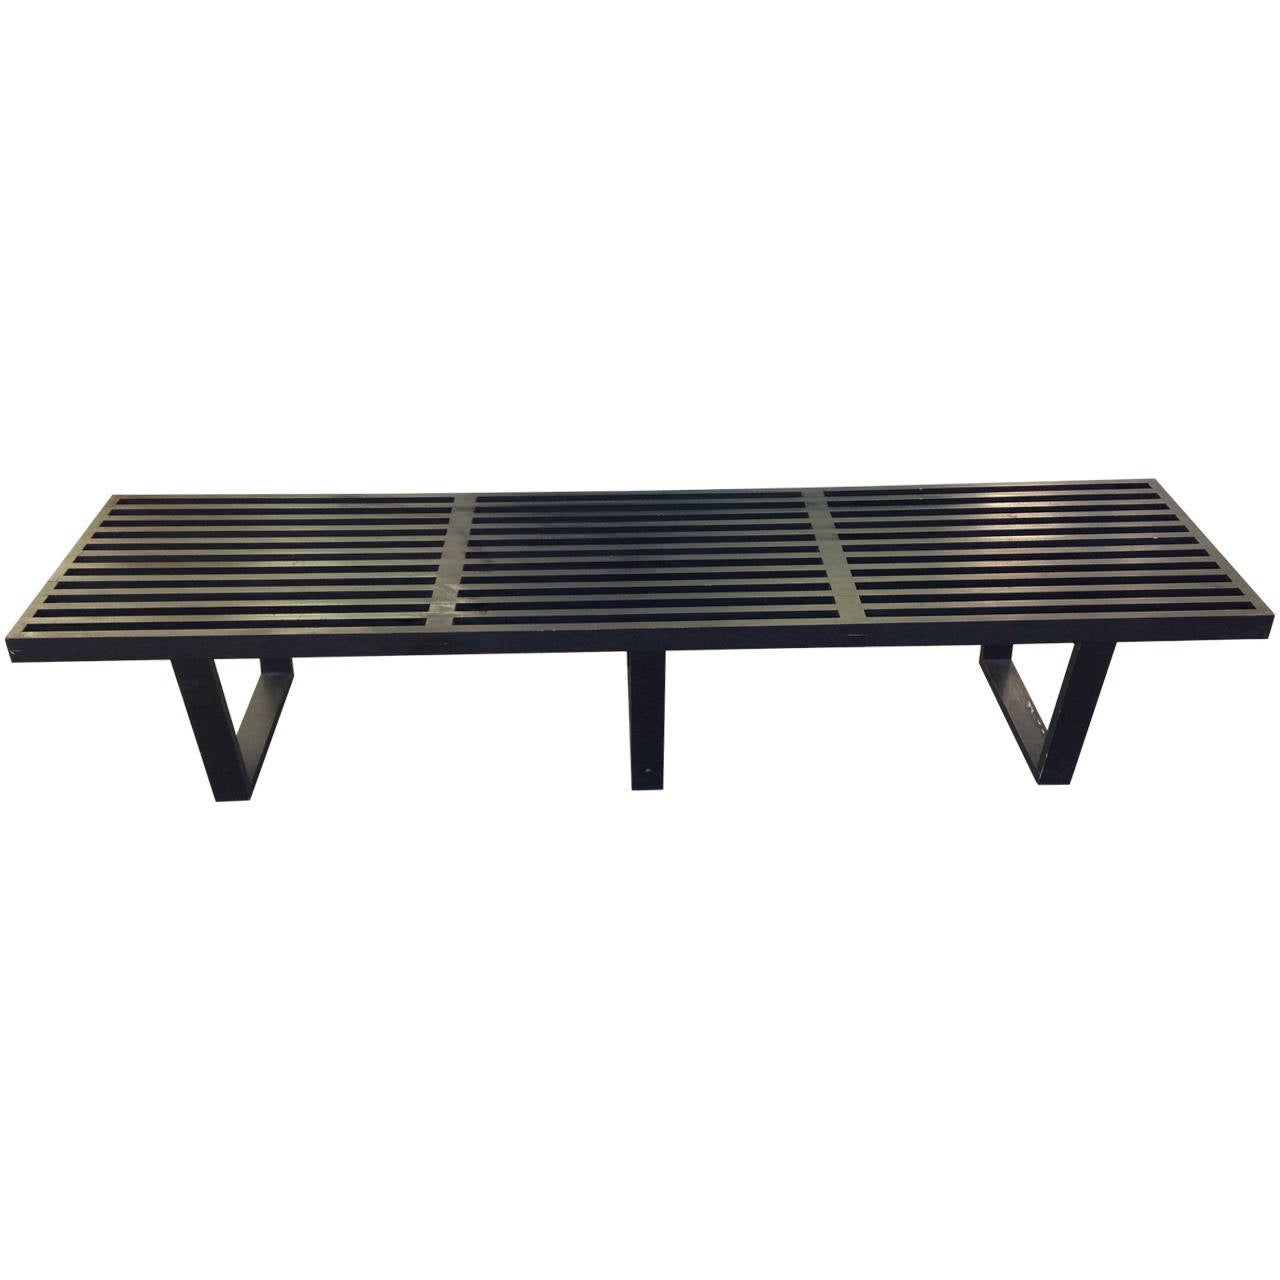 George Nelson Platform Bench Herman Miller 1952 At 1stdibs